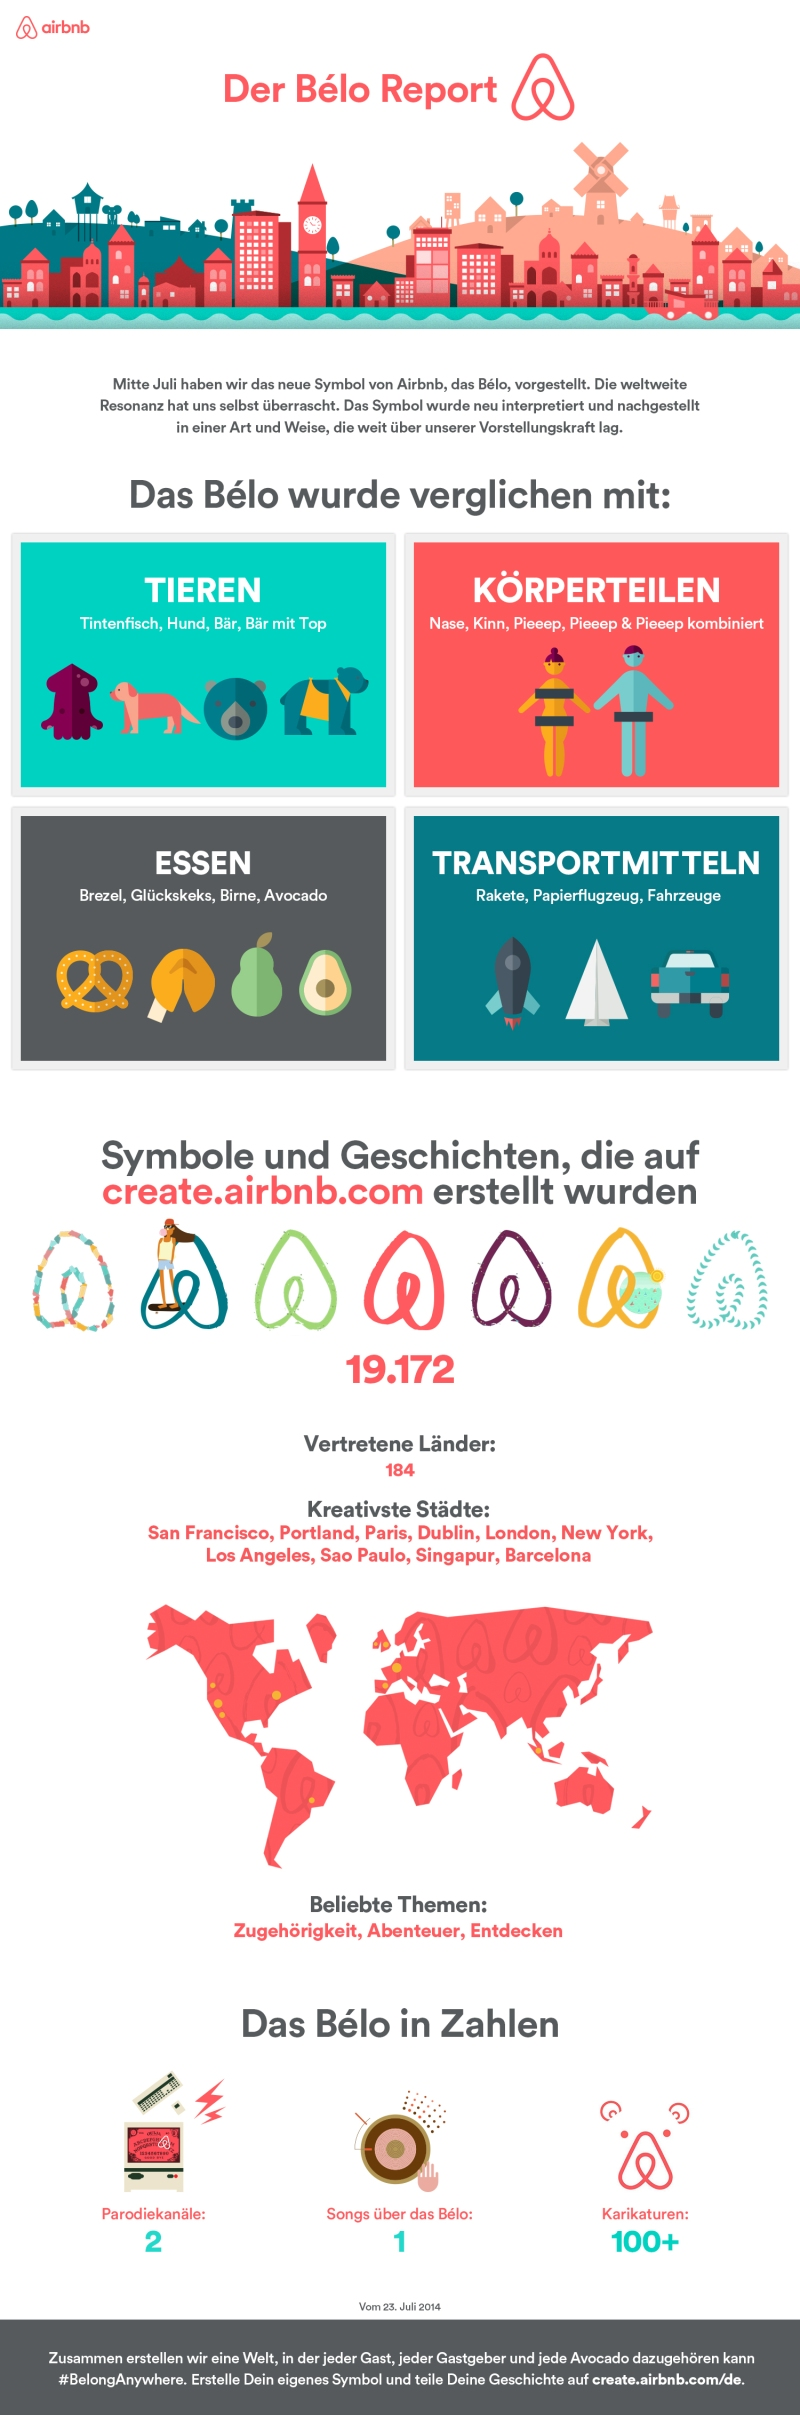 Airbnb_Belo_infographic_German (2)